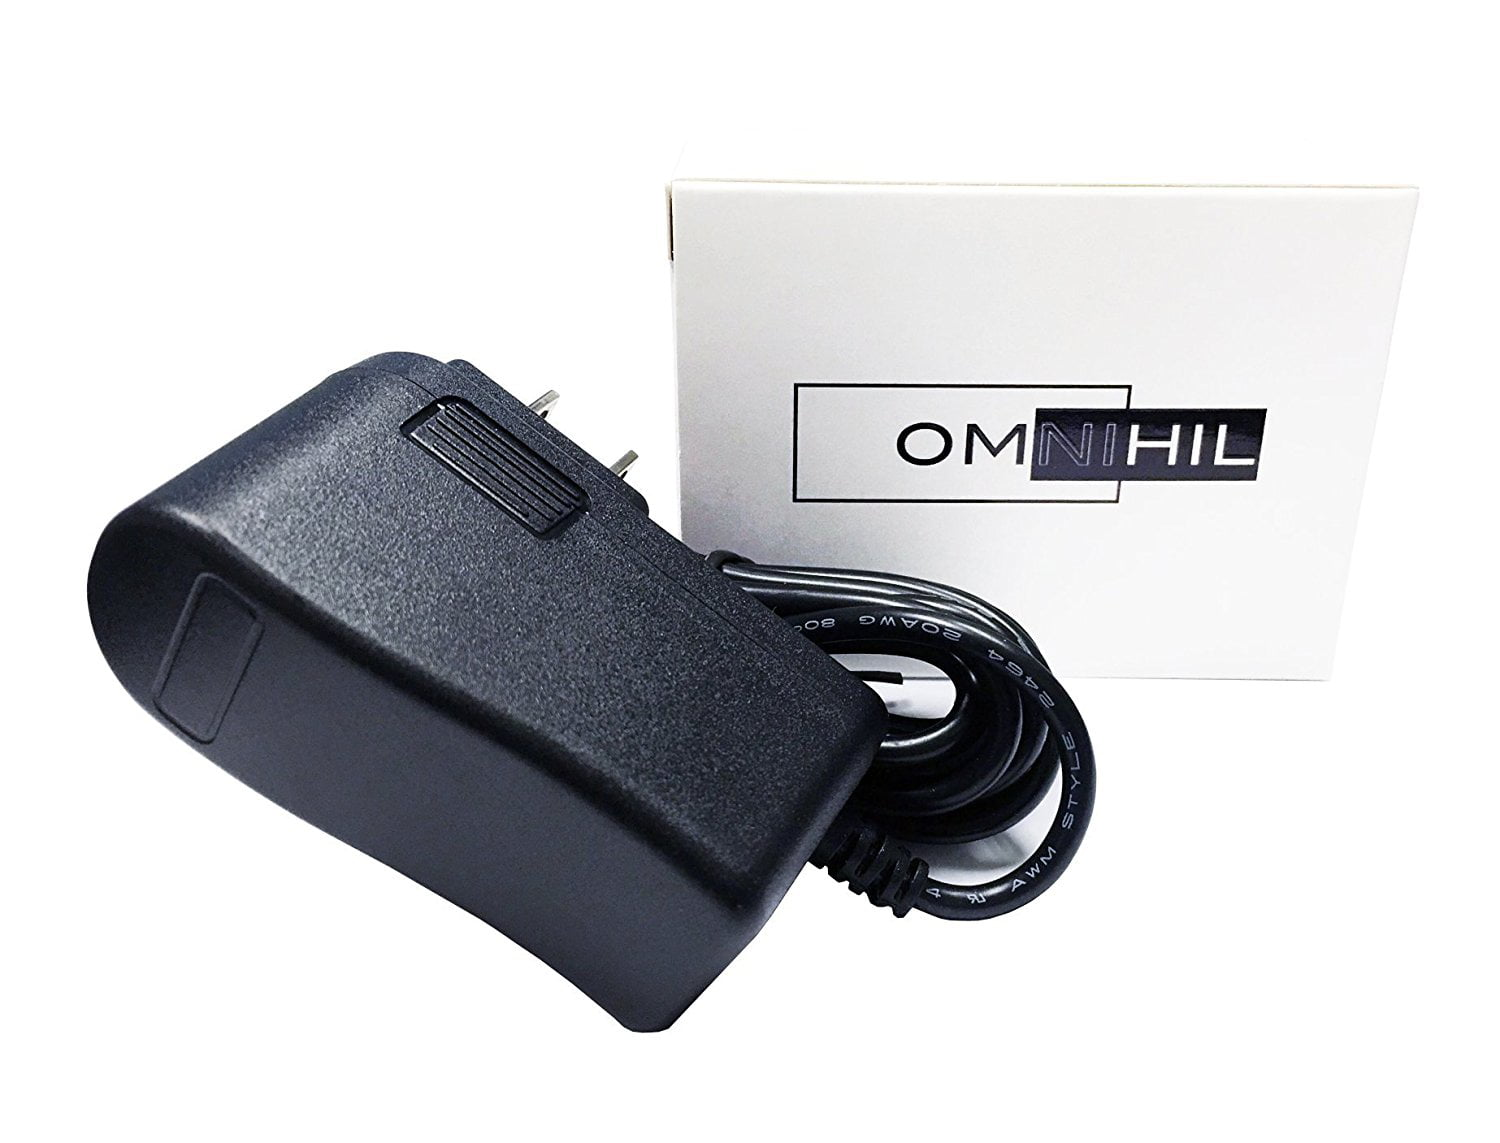 OMNIHIL (6.5FT) USB Charger for Matone Portable 8000mAh with USB Solar Battery Charger Power Bank Replacement Power Supply by OMNIHIL